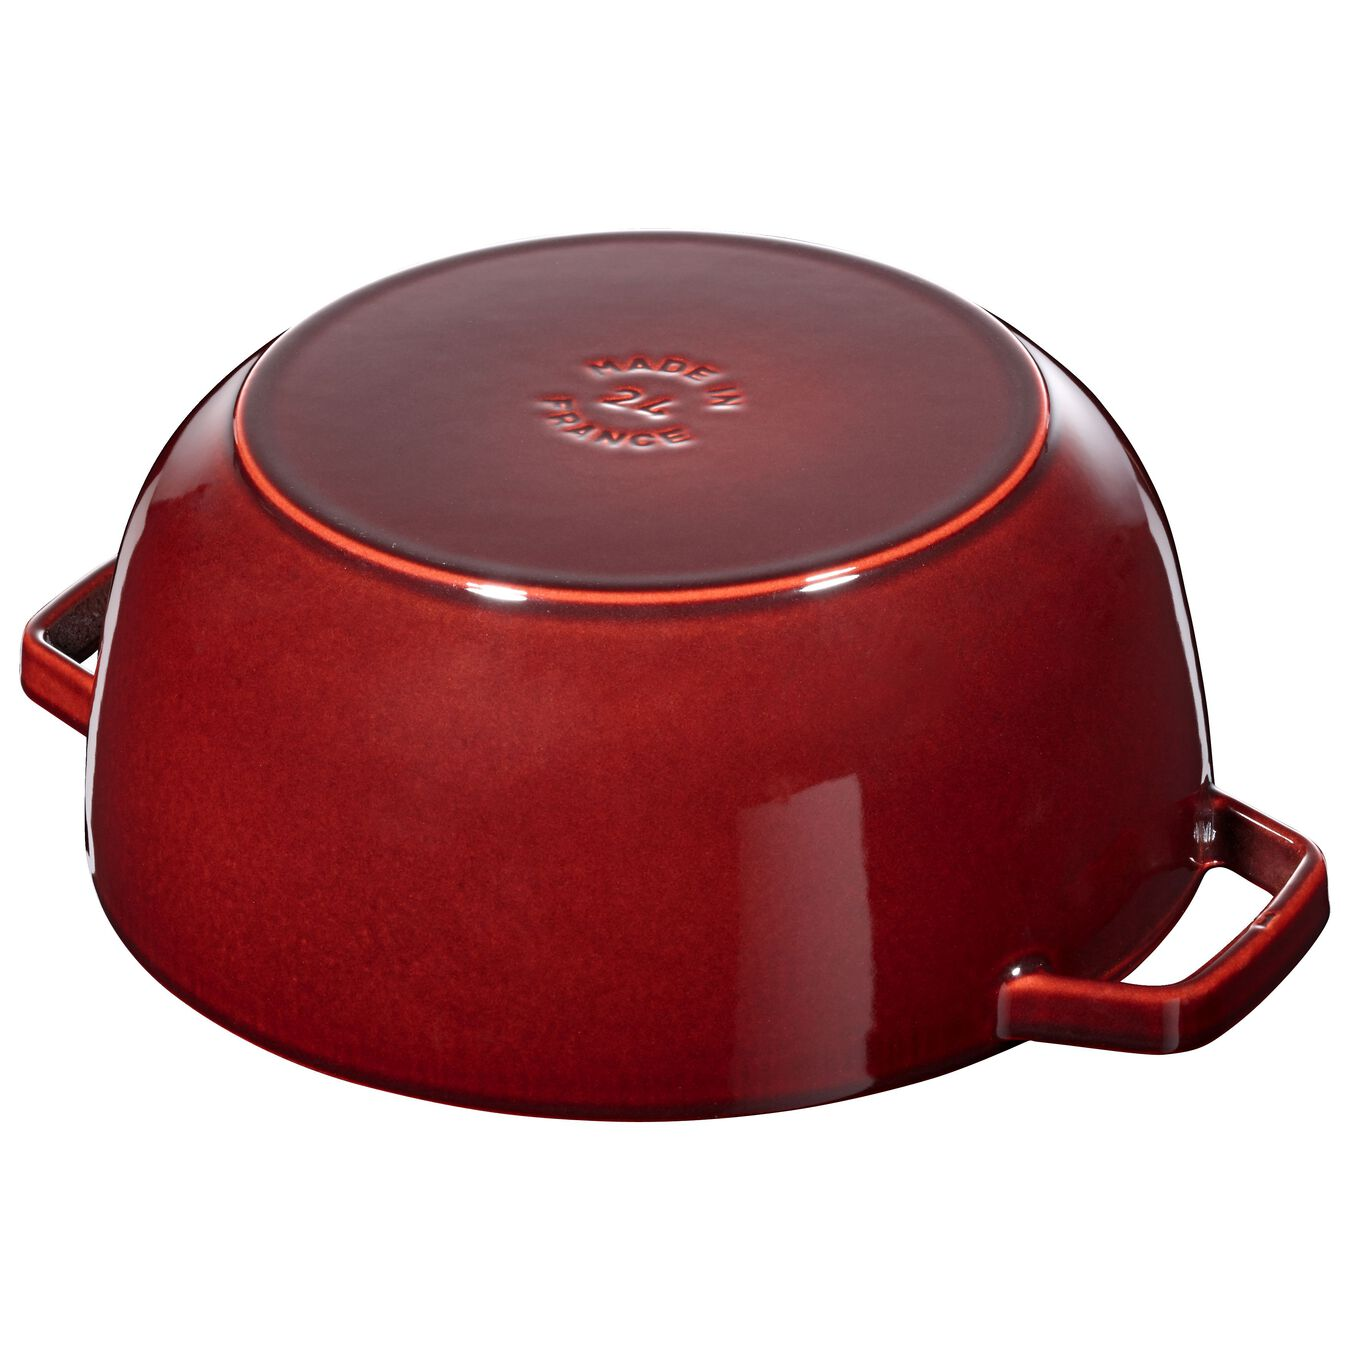 3,6 l Cast iron round Cocotte, Grenadine-Red,,large 4